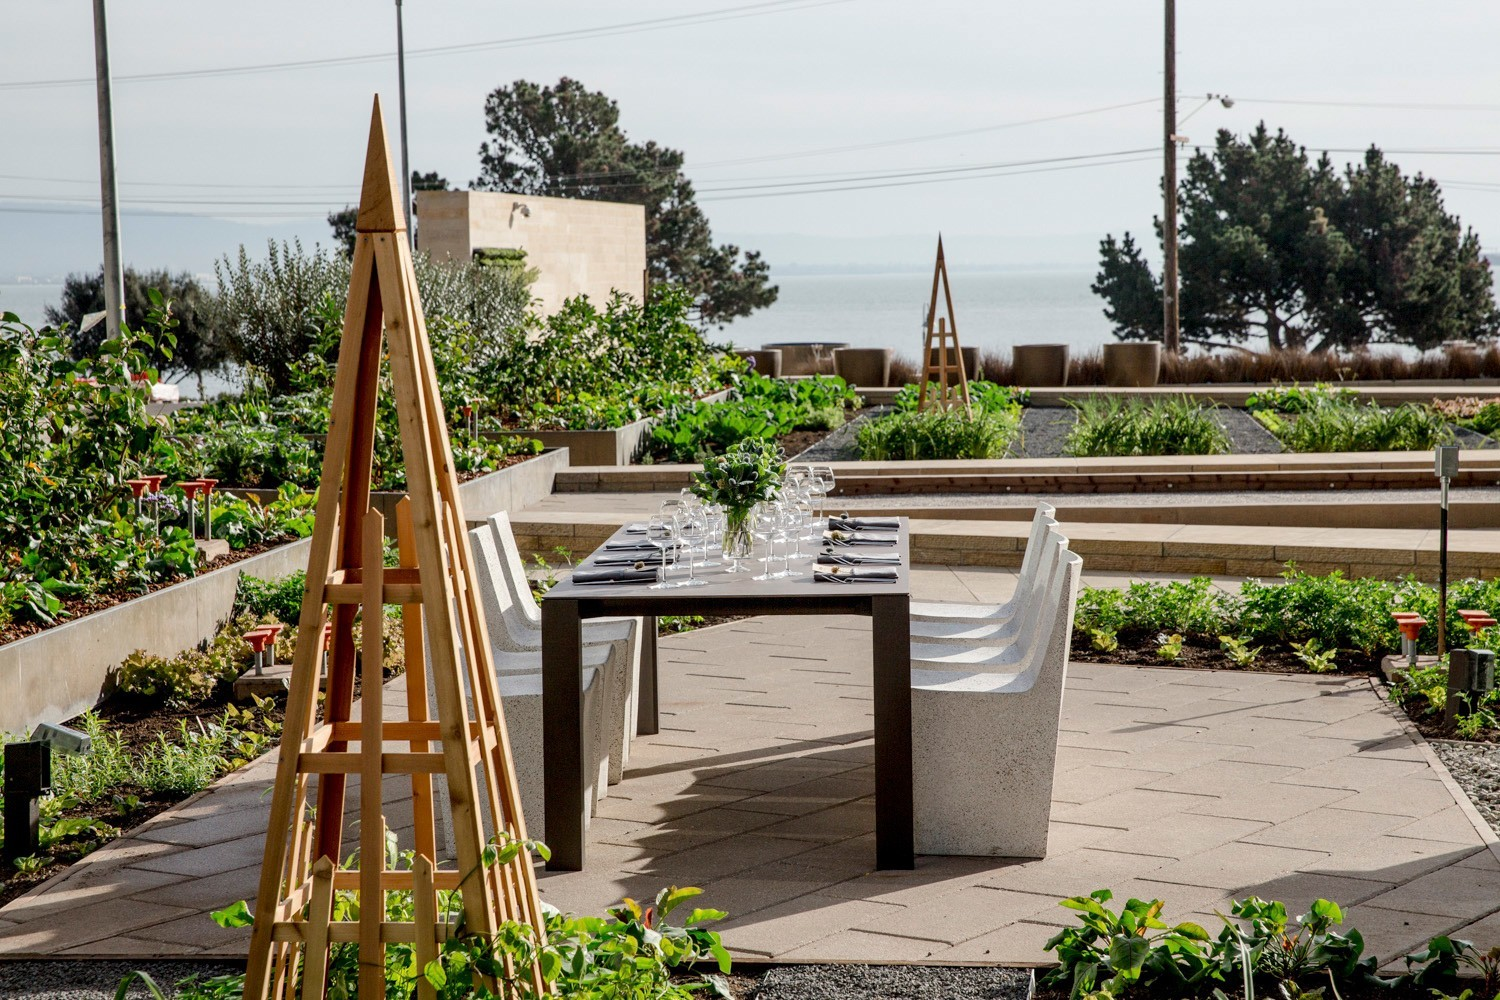 Stem Kitchen boasts a chef's table, on-site garden, bocce ball court and a lawn with views of San Francisco Bay.